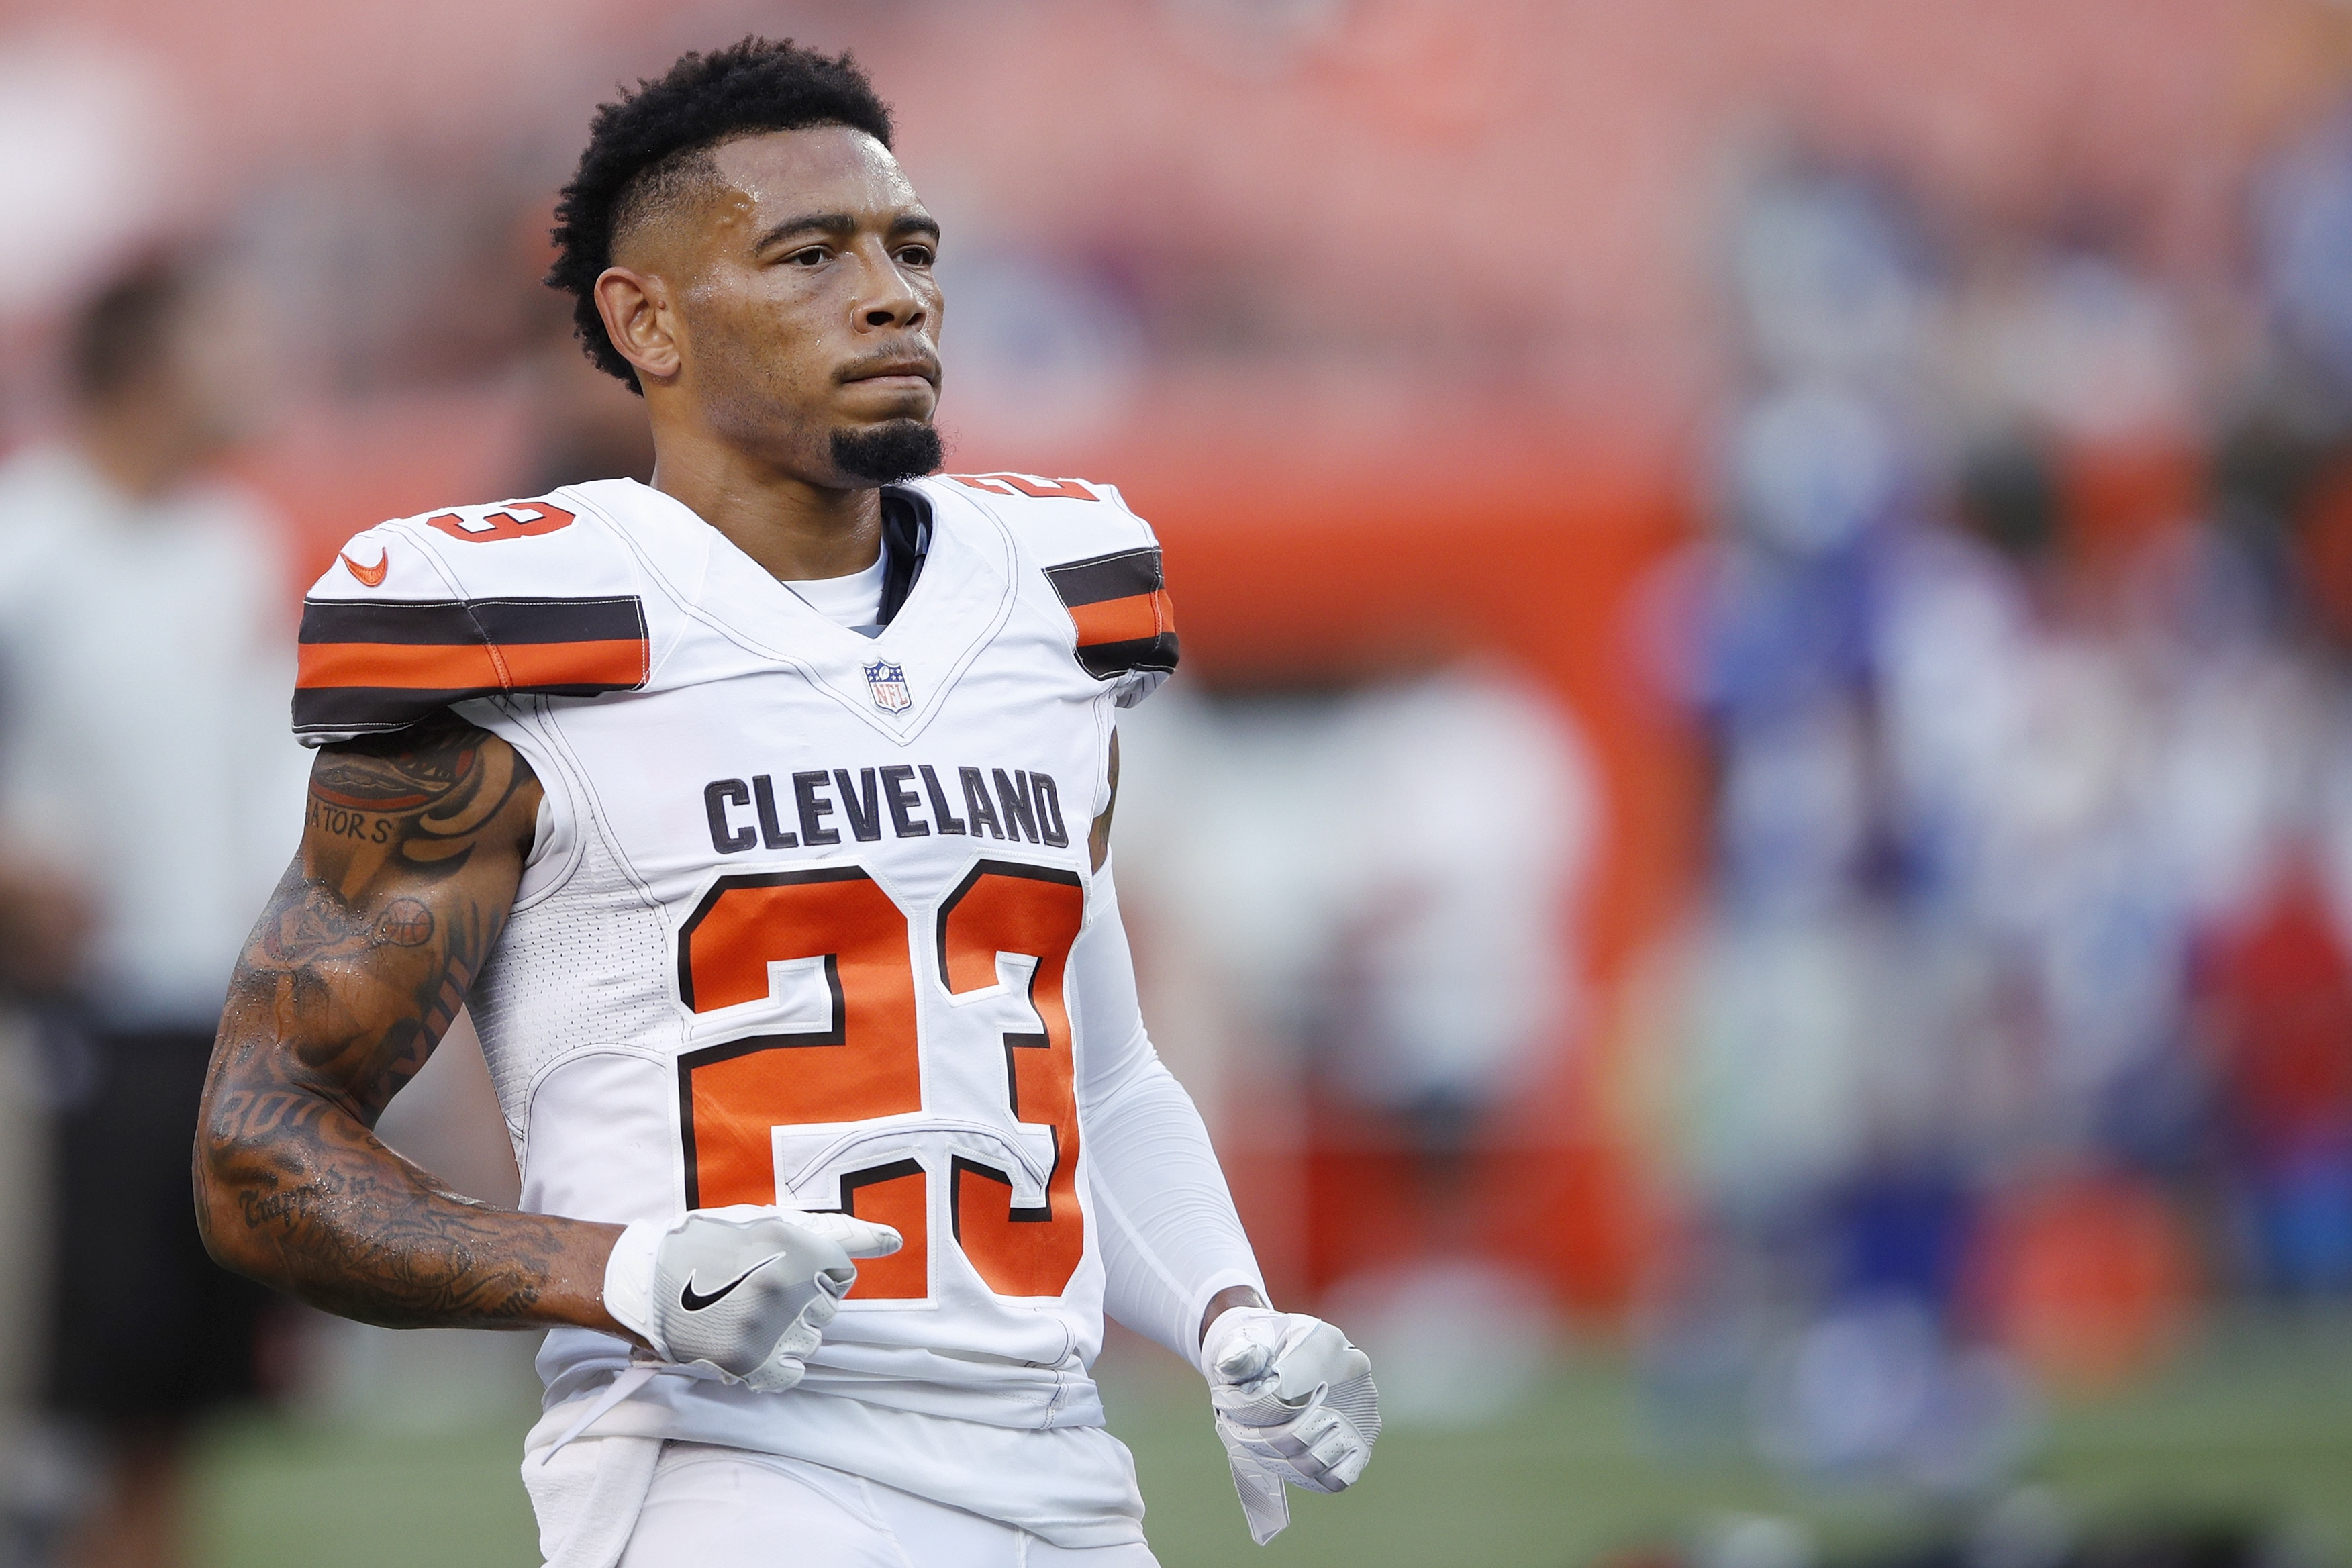 The New England Patriots should take a chance on Joe Haden